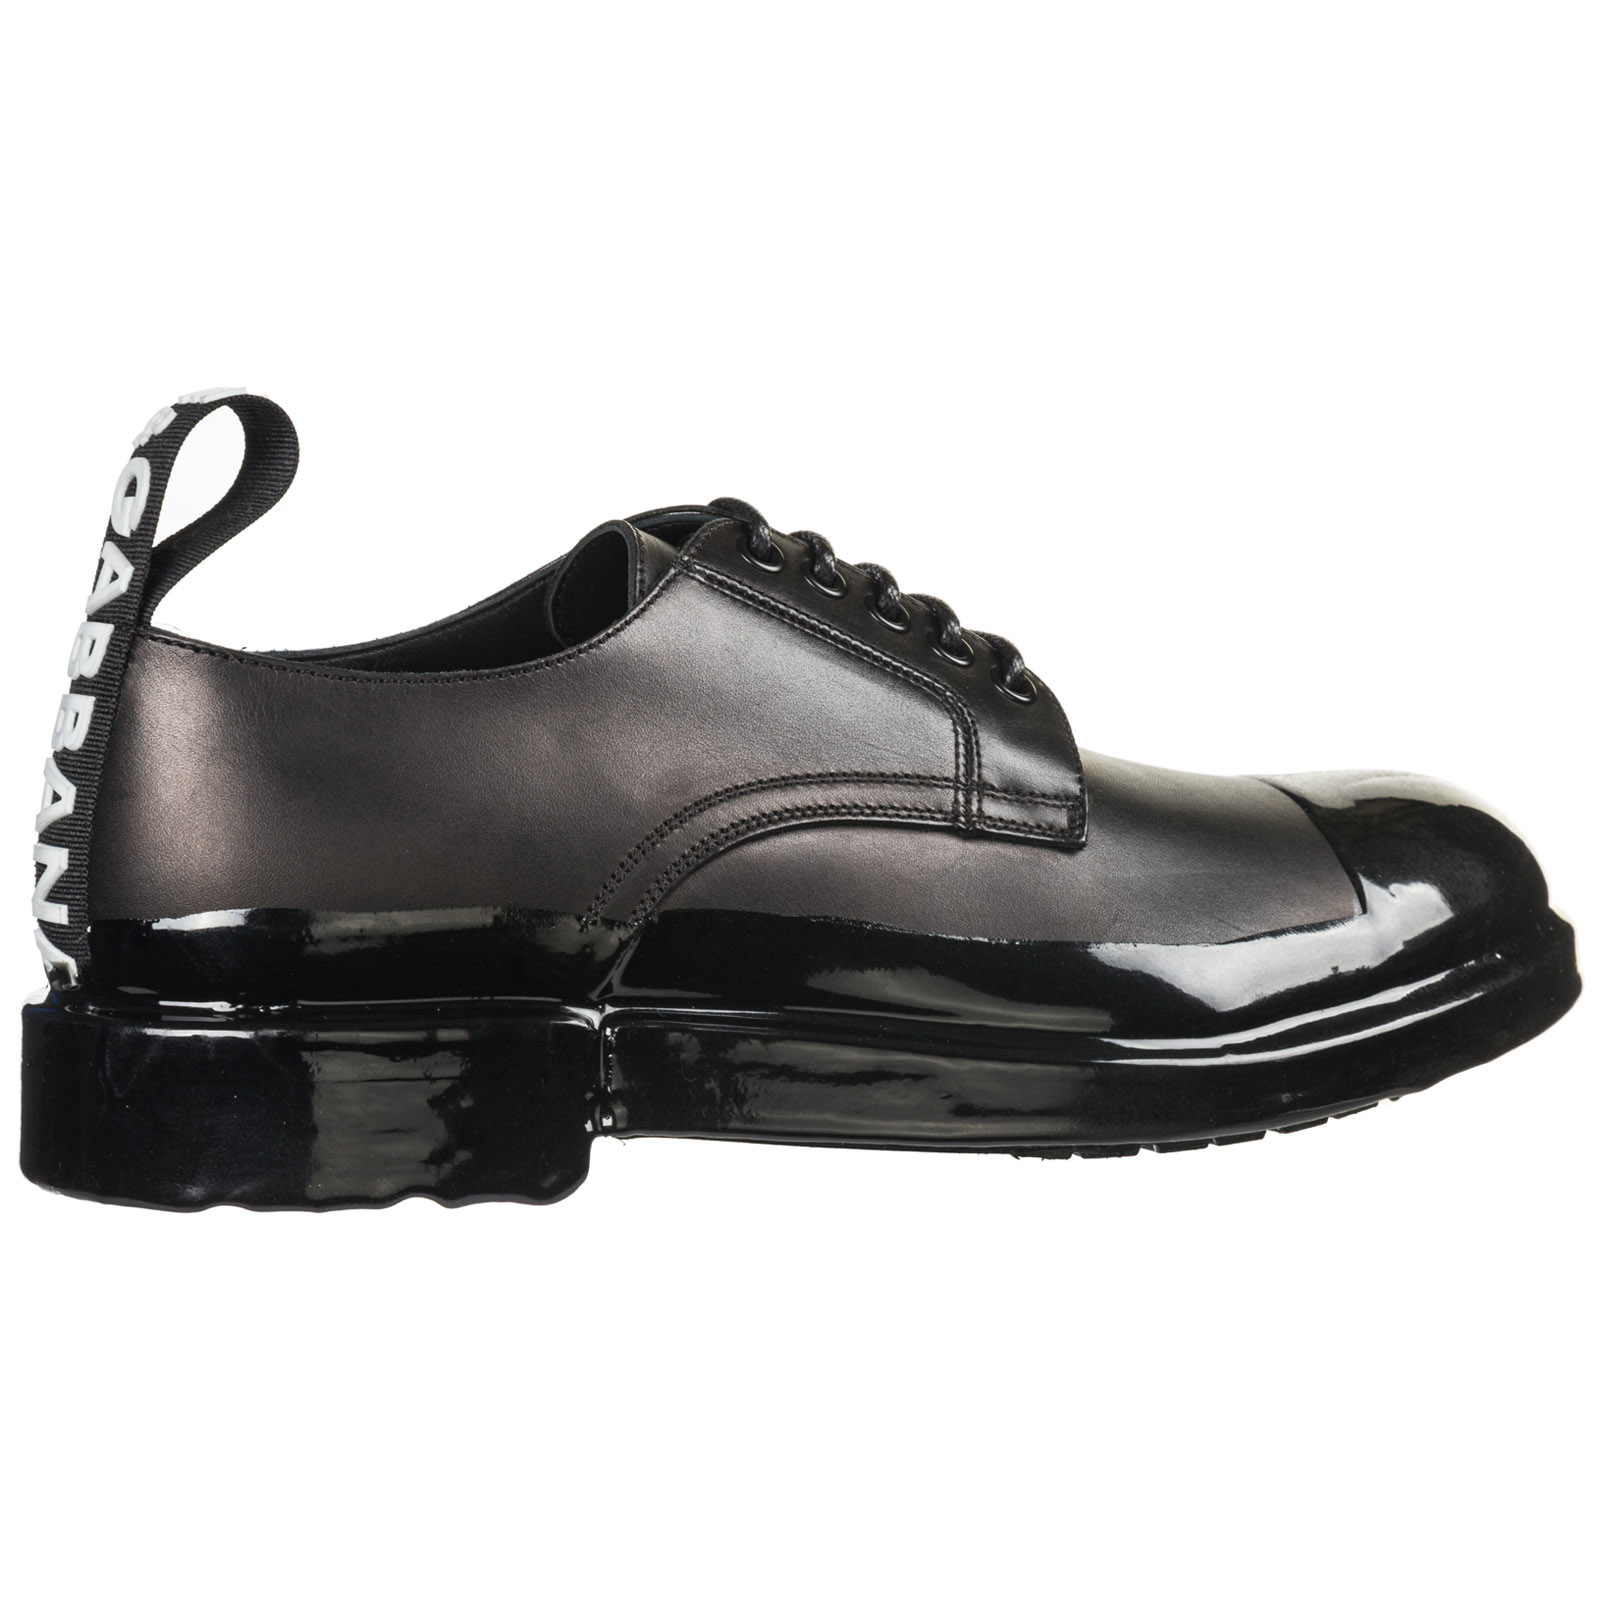 Men's classic leather lace up laced formal shoes firenze derby